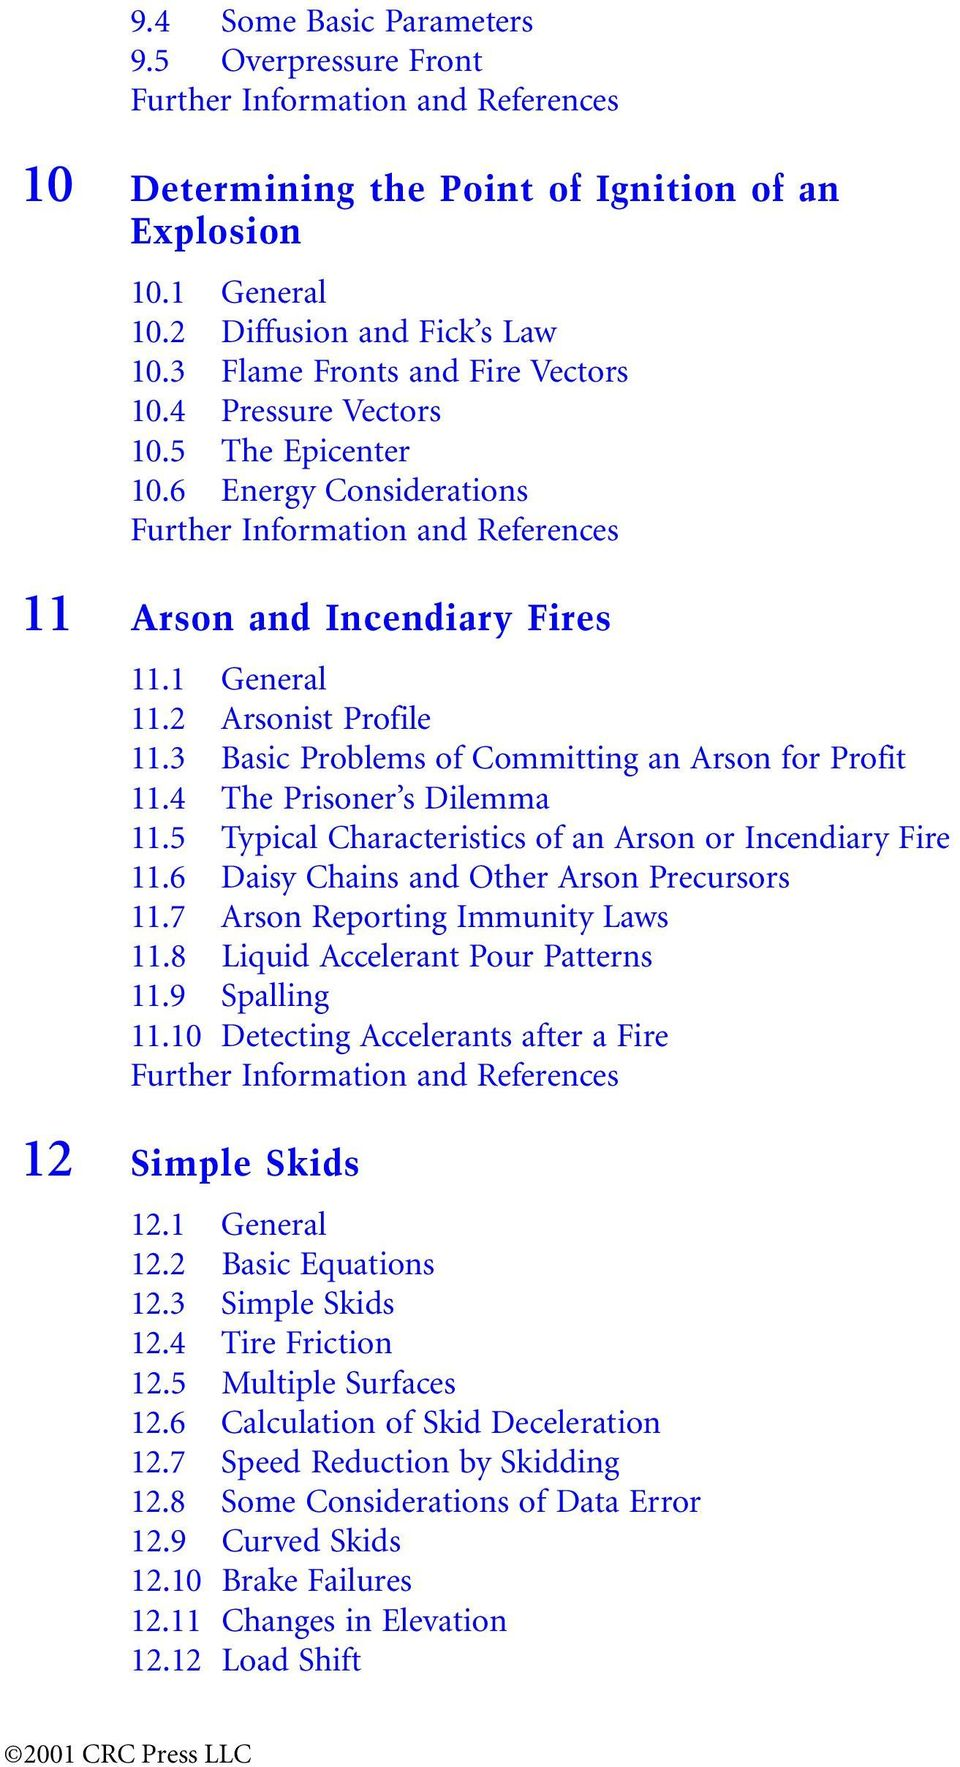 2 Arsonist Profile 11.3 Basic Problems of Committing an Arson for Profit 11.4 The Prisoner s Dilemma 11.5 Typical Characteristics of an Arson or Incendiary Fire 11.